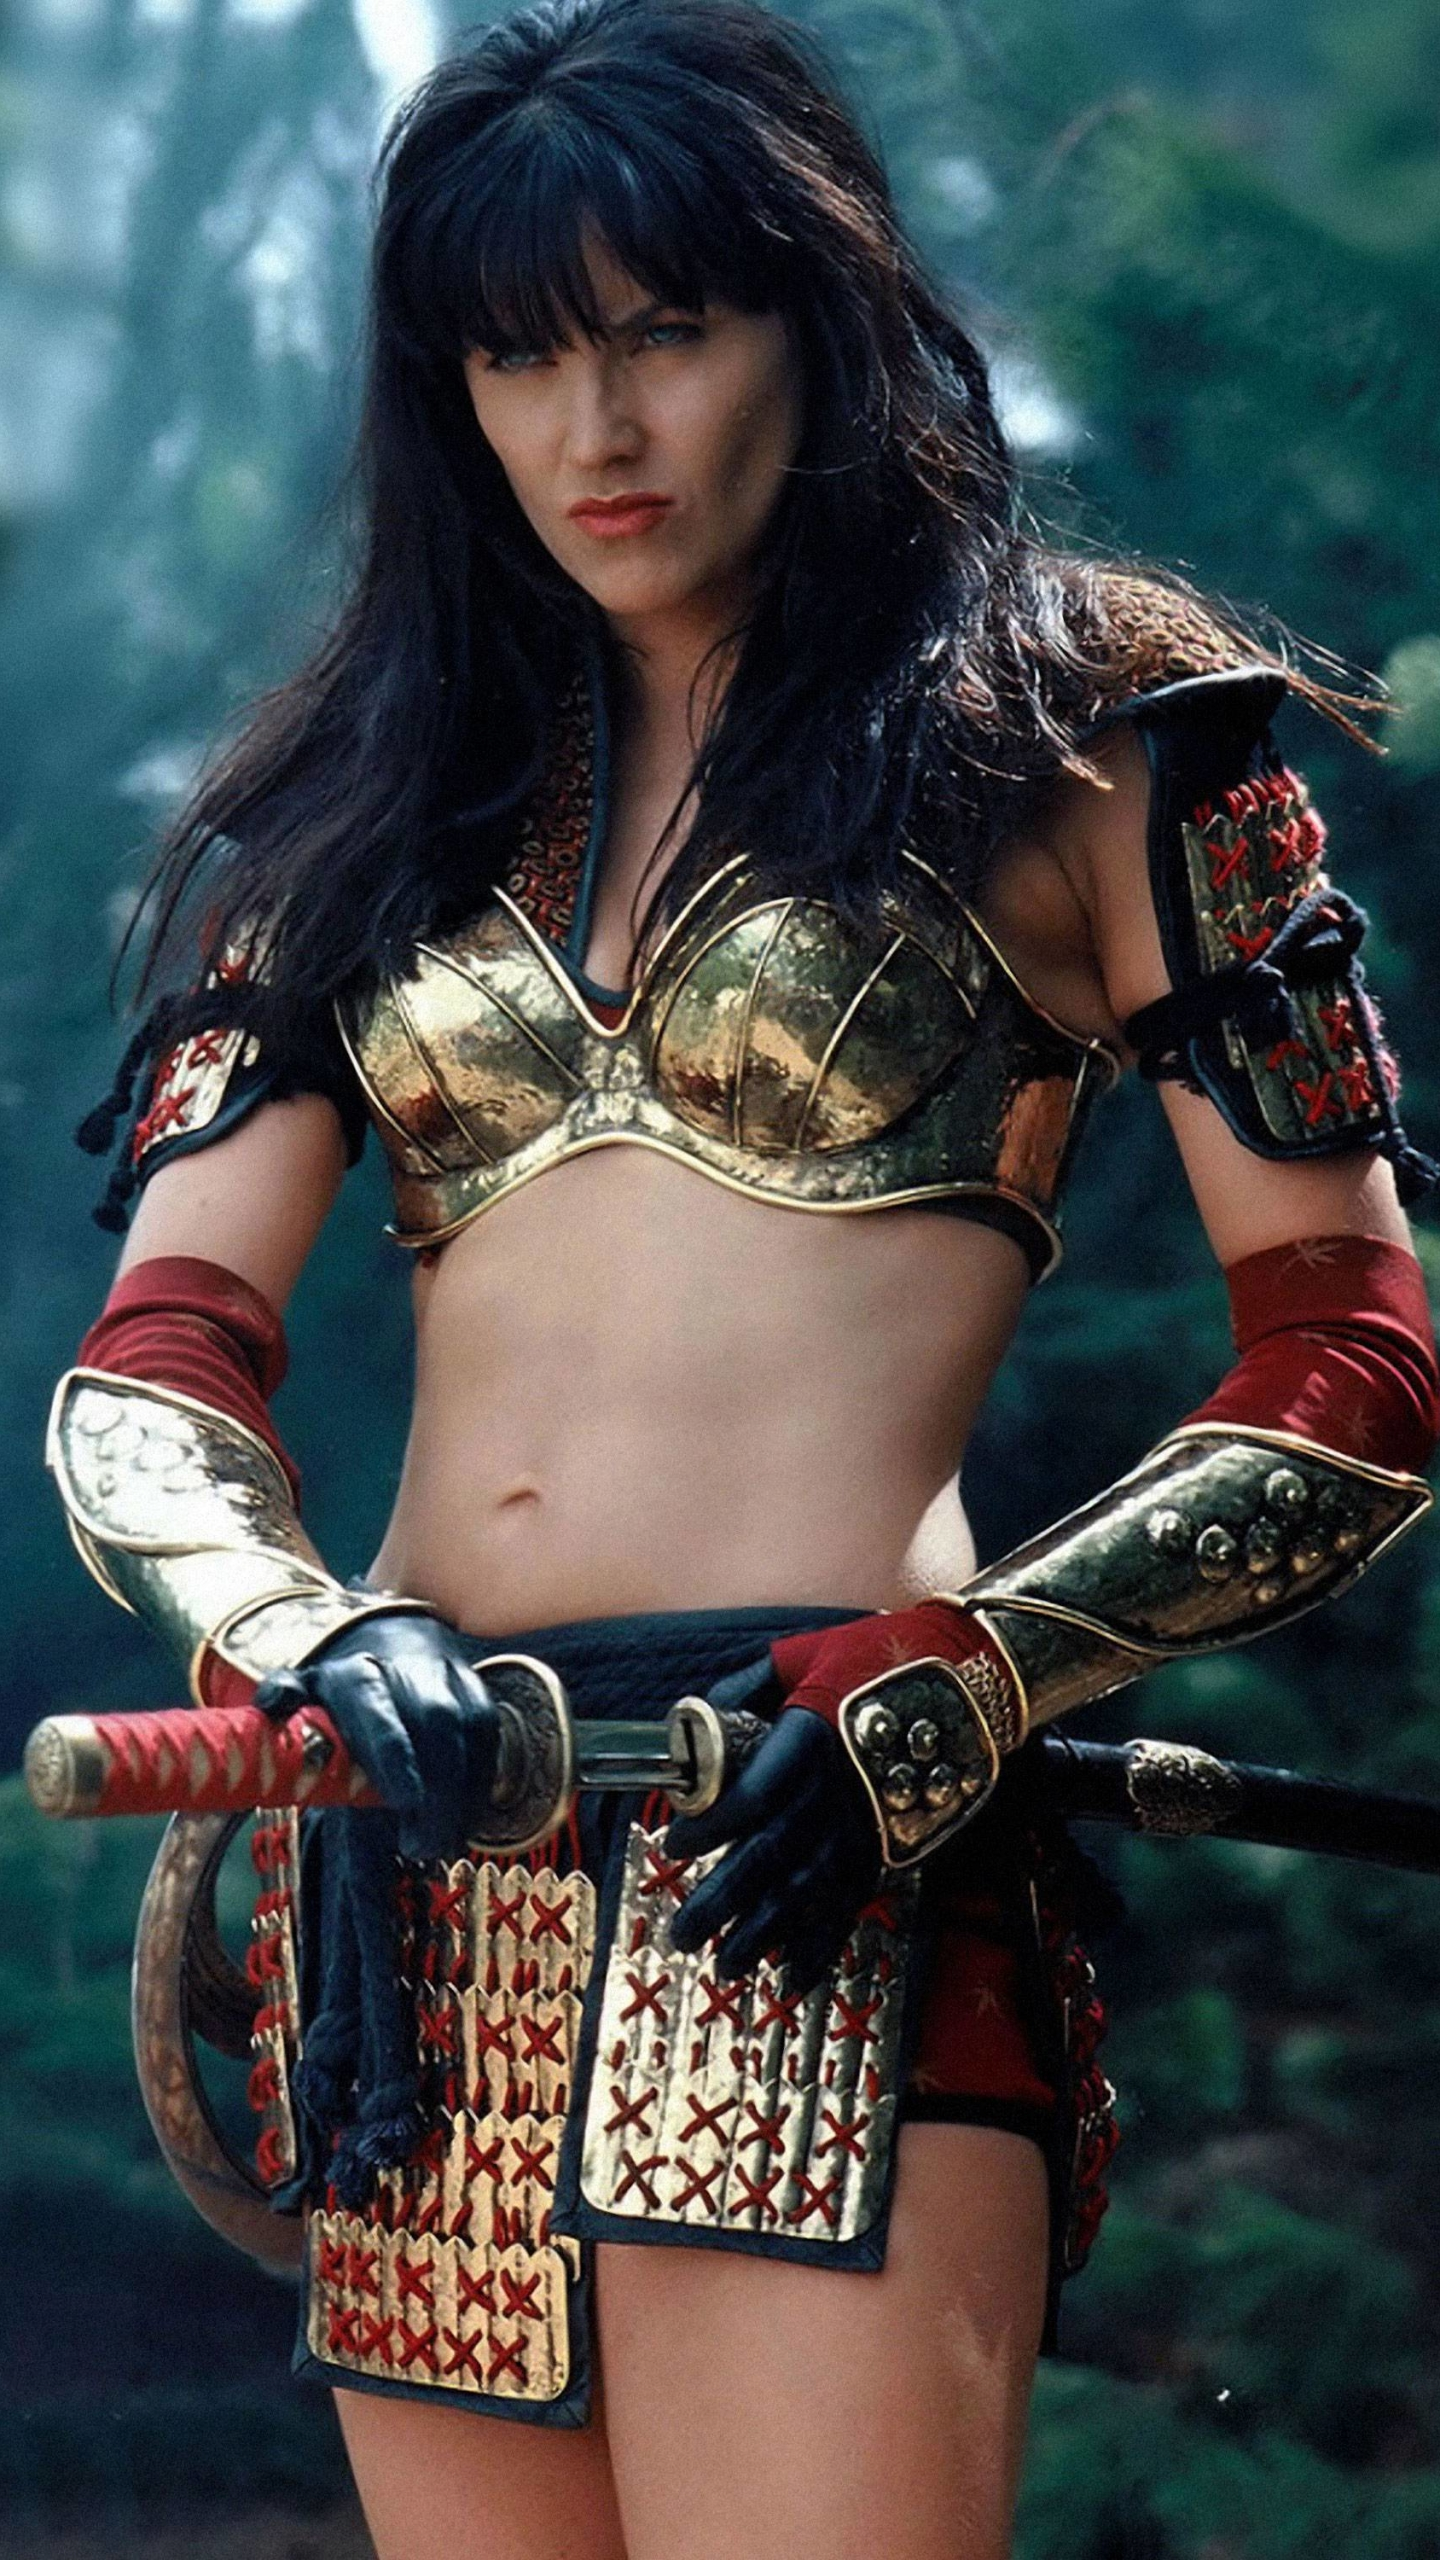 Topless warrior chick gifs porn porn star